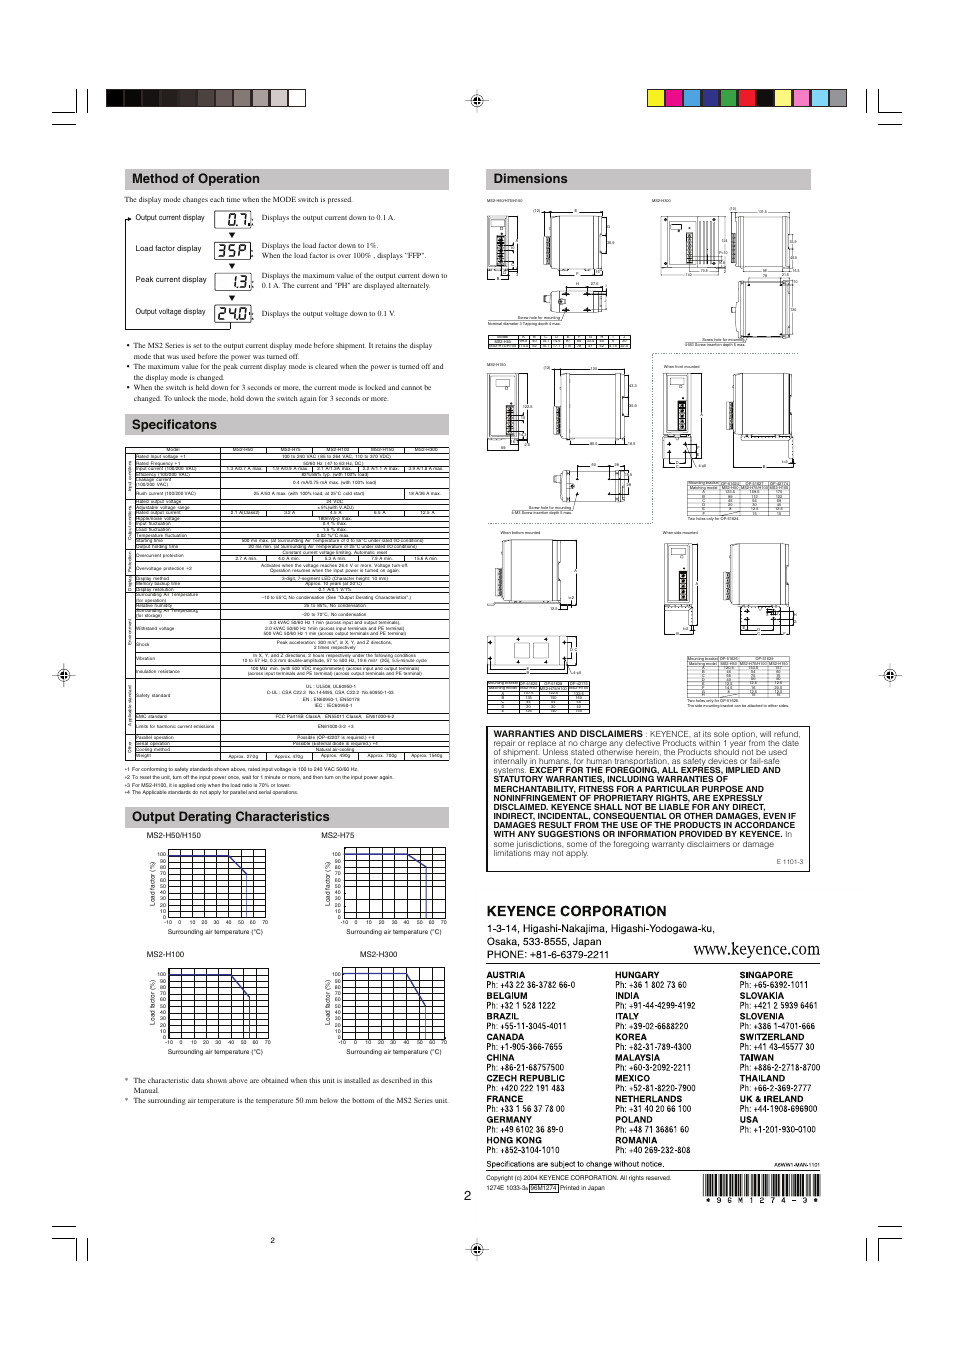 Method of operation, Specificatons, Output derating characteristics |  KEYENCE MS2 Series User Manual | Page 2 / 2